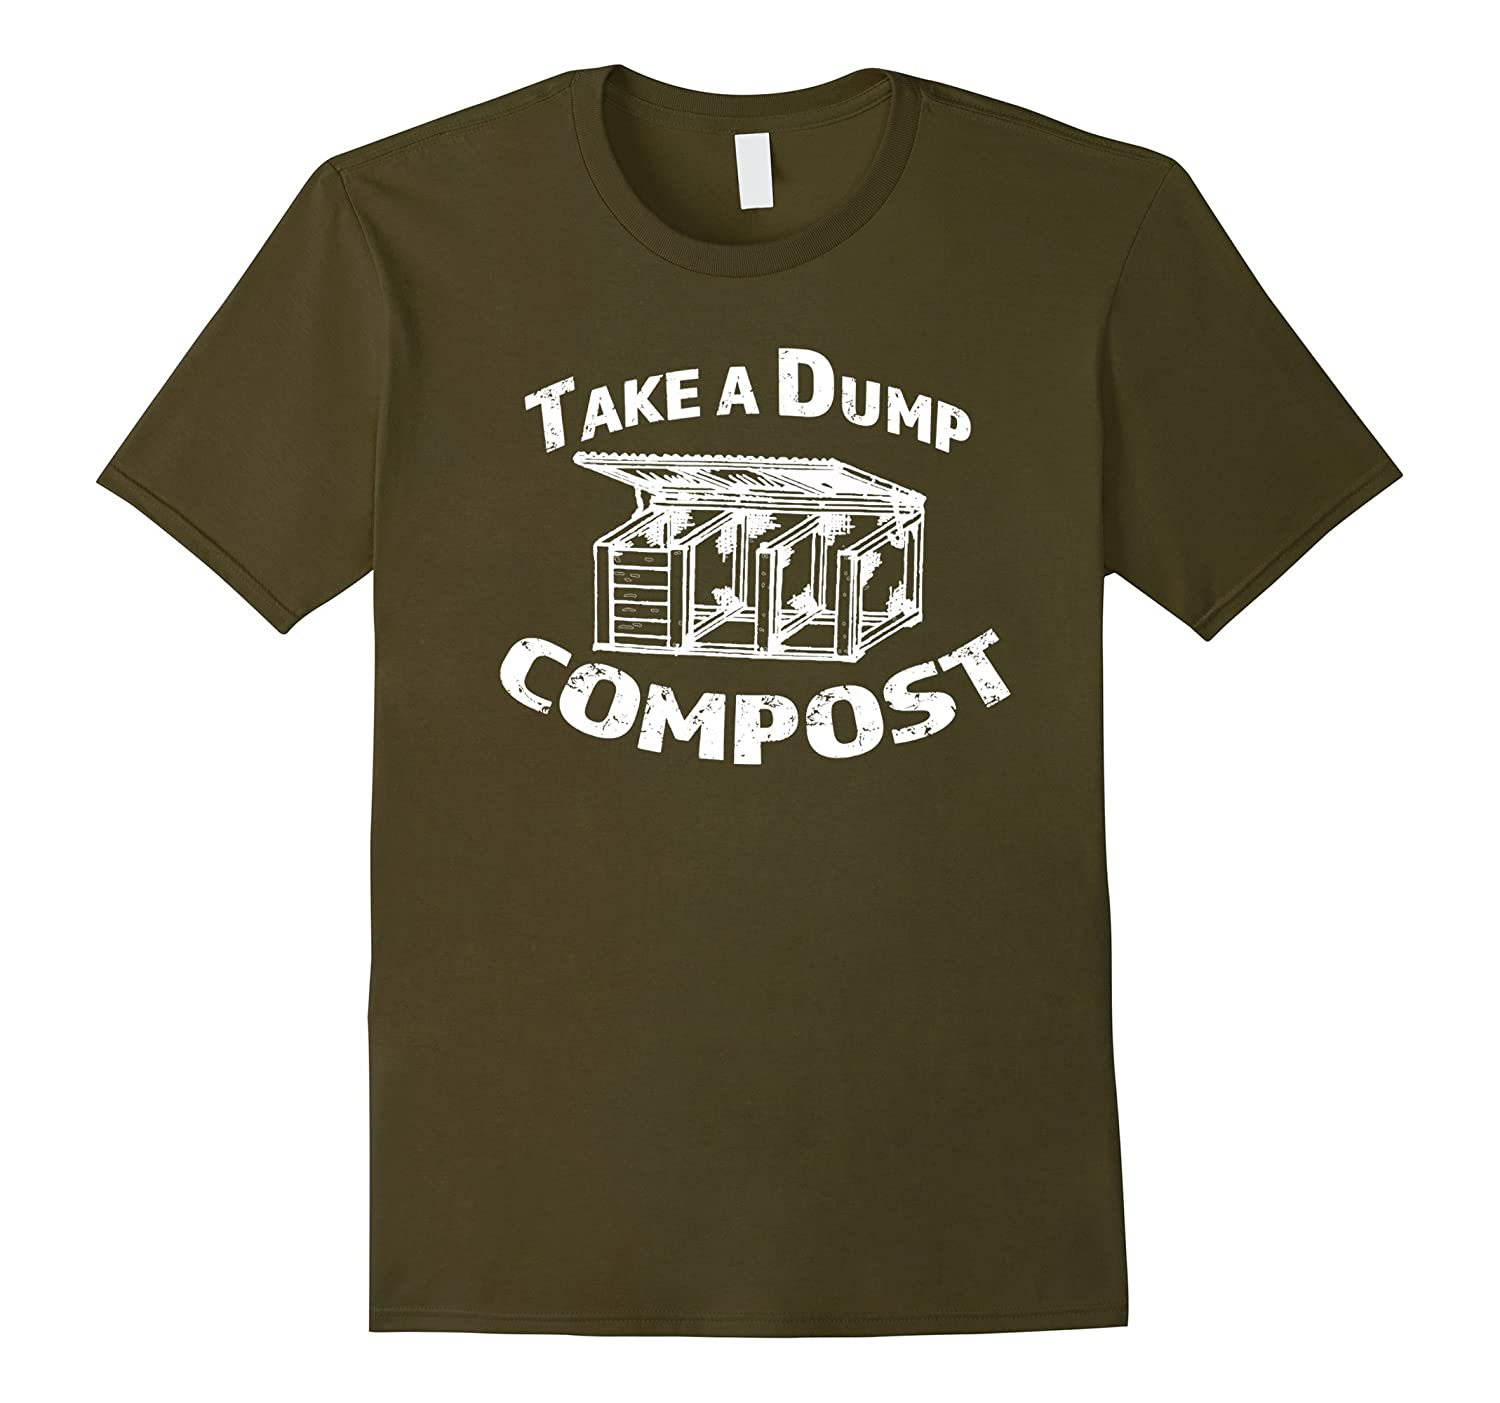 Compost Hero Take A Dump Organic Garden Love Funny Shirt-TD – theteejob